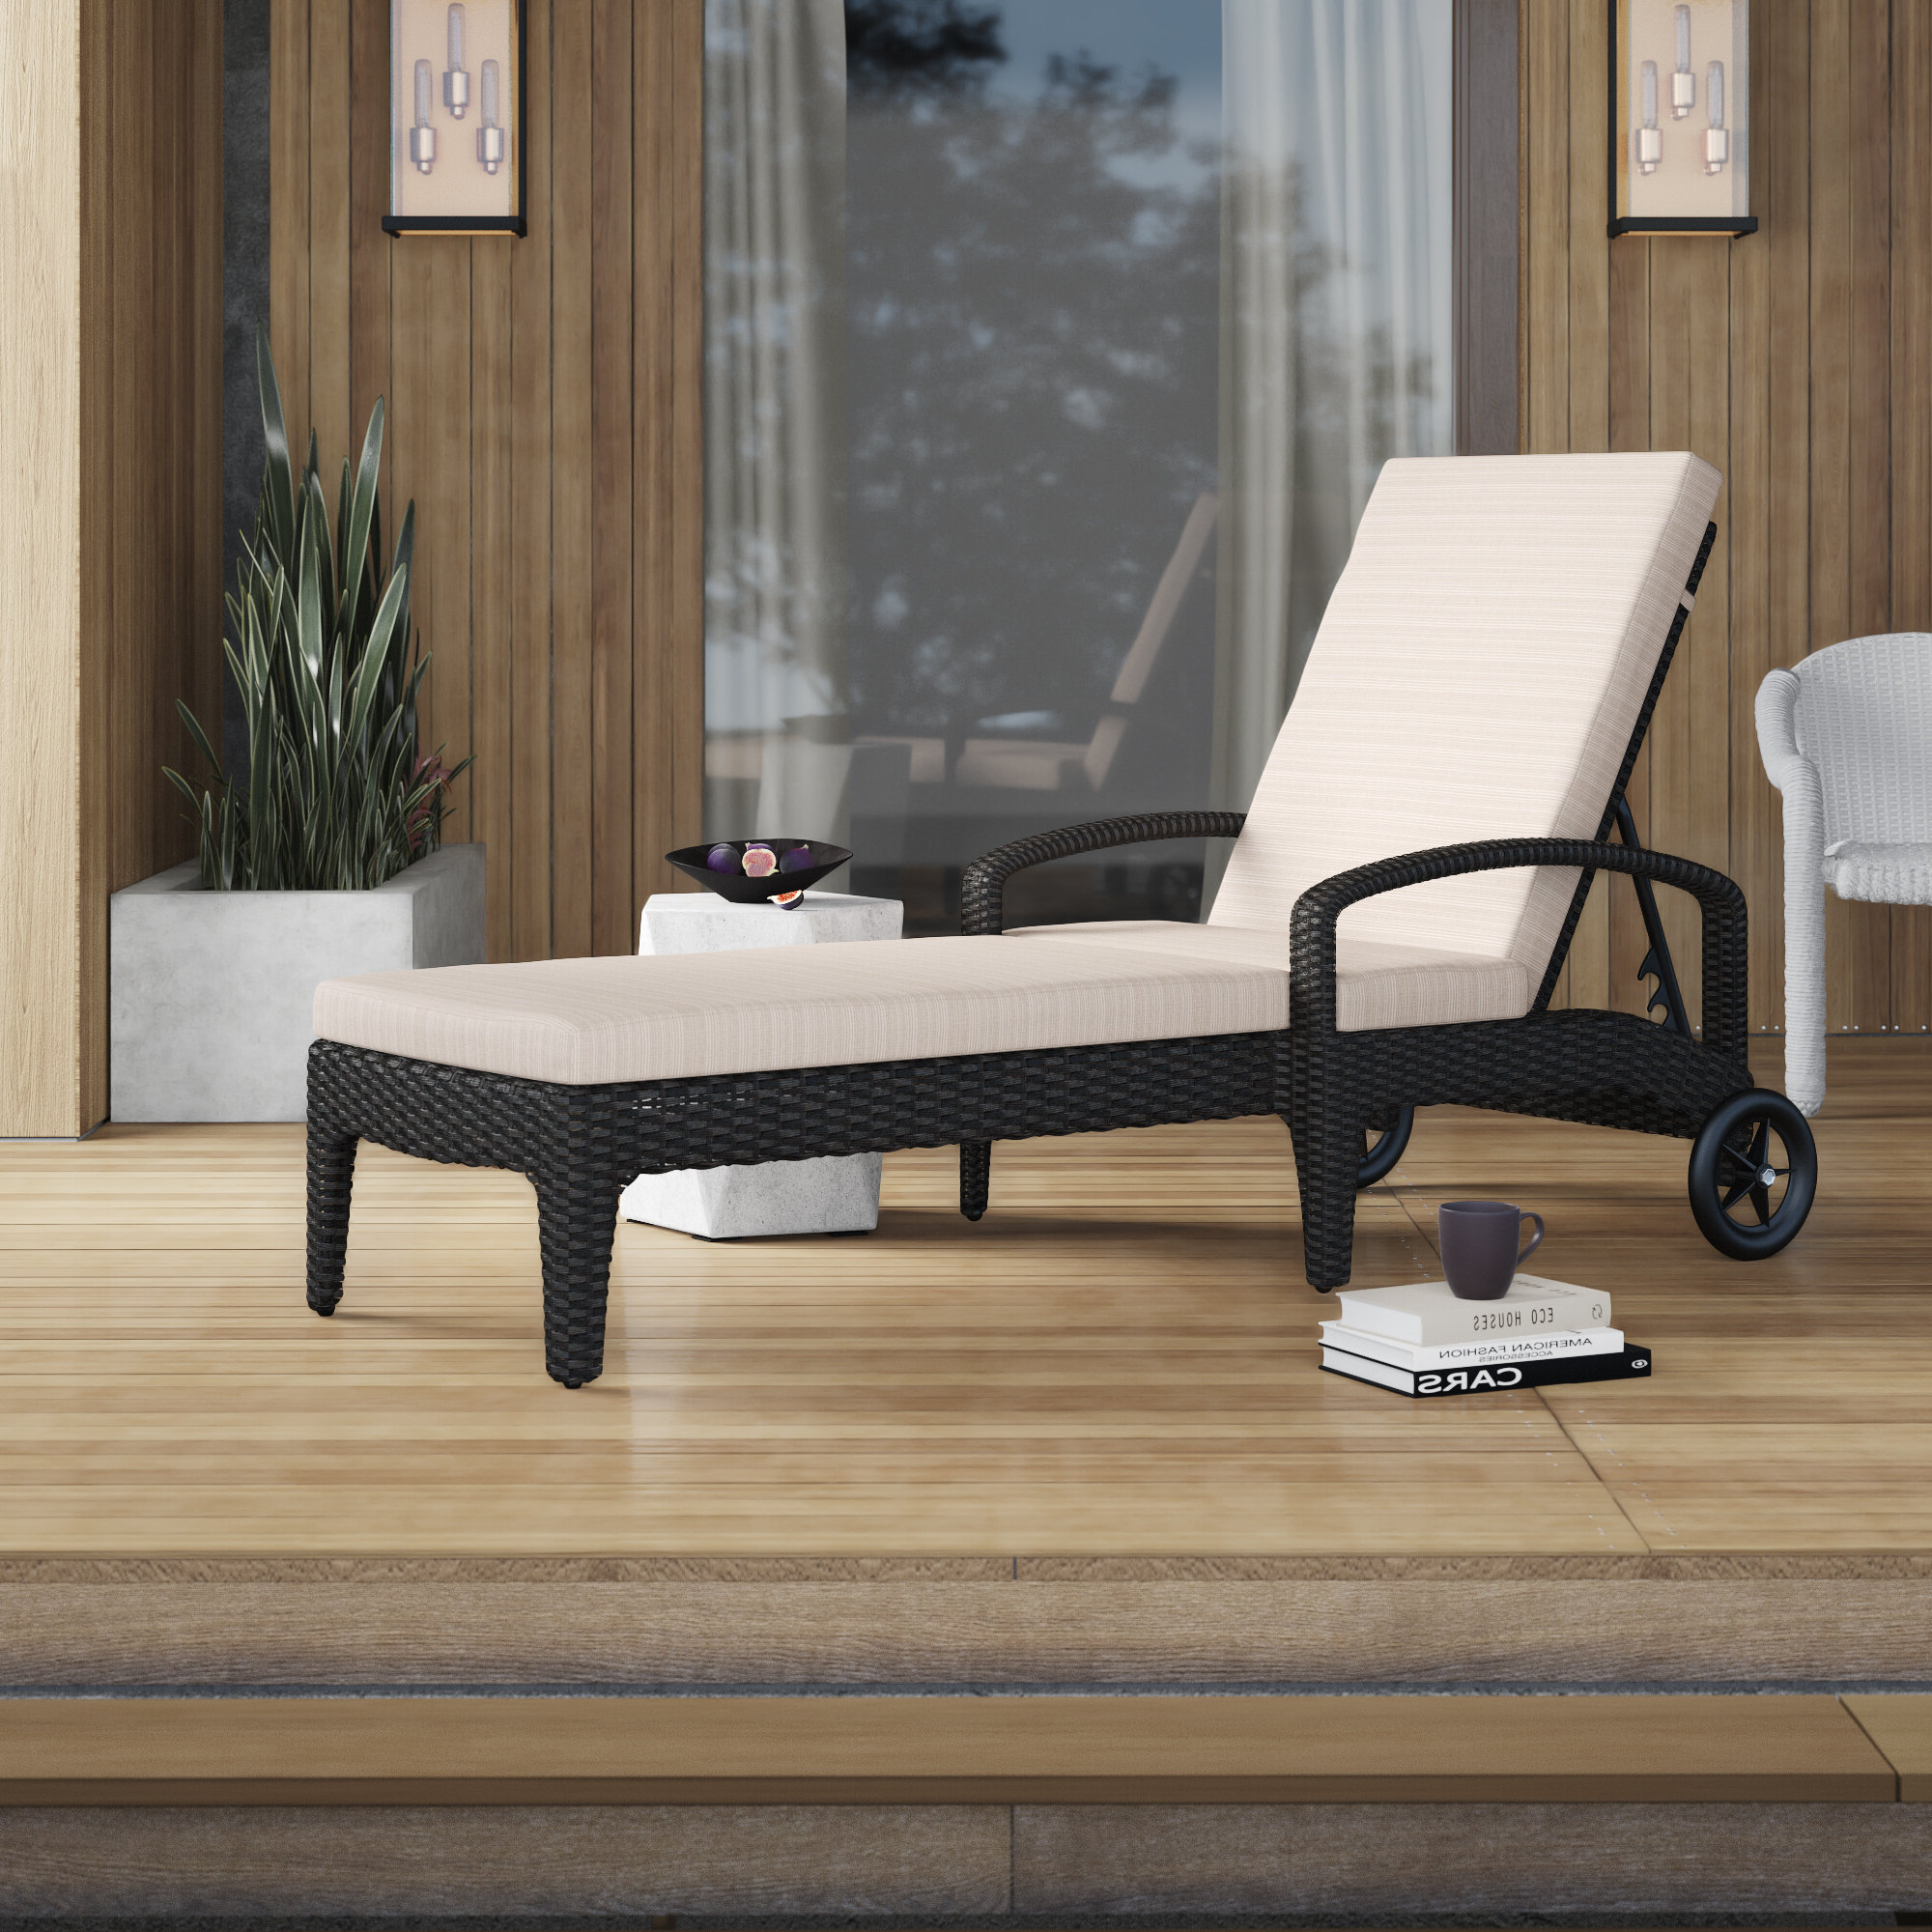 Lattice Outdoor Patio Pool Chaise Lounges With Wheels And Cushion For 2019 Landers Reclining Chaise Lounge With Cushion (Gallery 21 of 25)